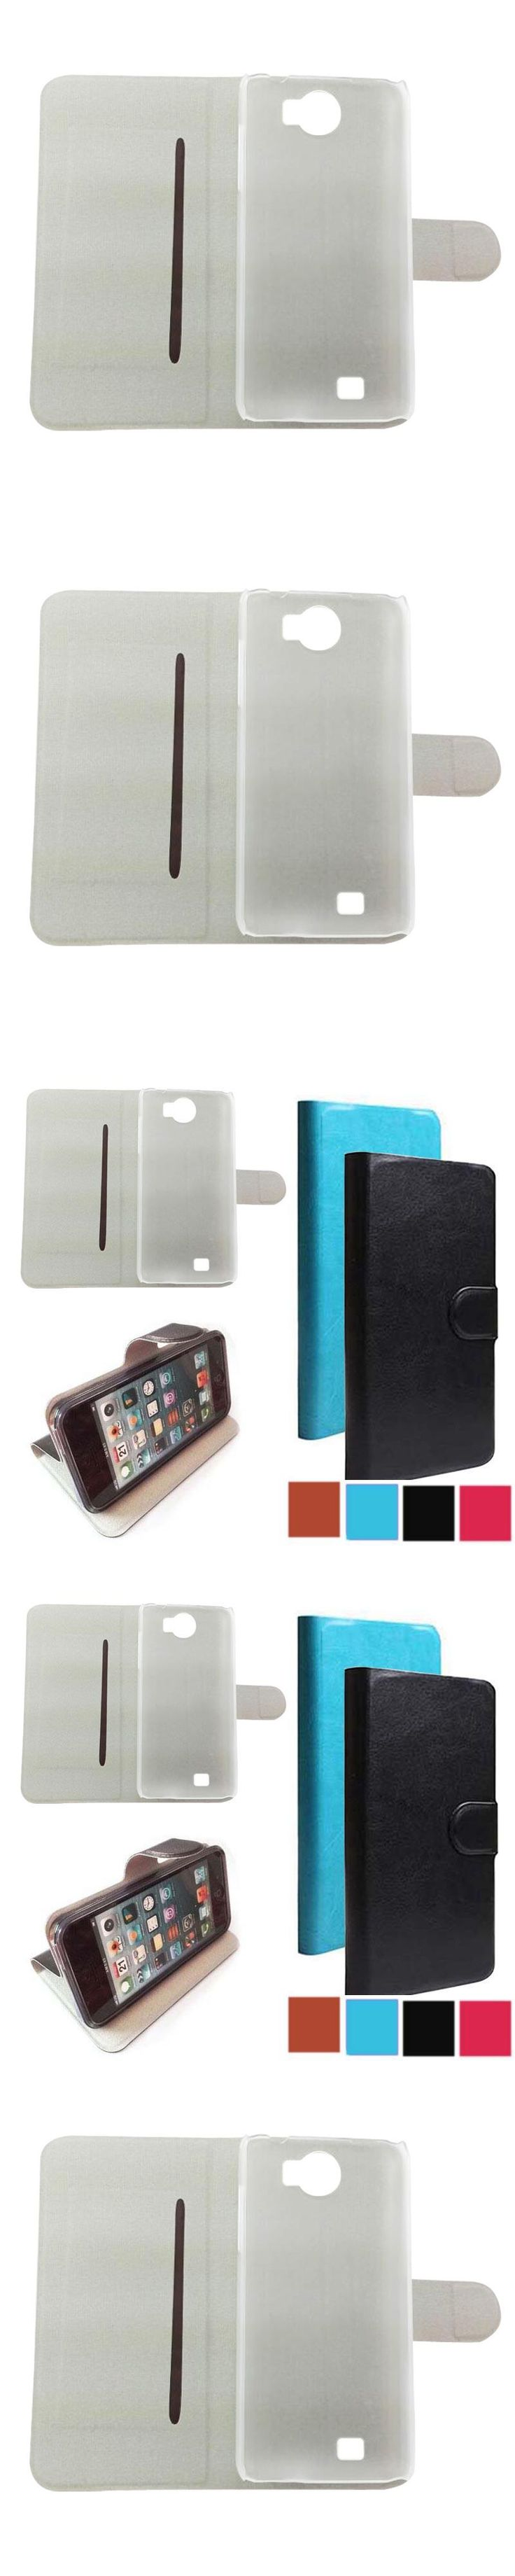 Hot Sell Original PU Leather Flip Cover Case For Cubot GT99 Cell Phones Holster +Touch Pen Gift